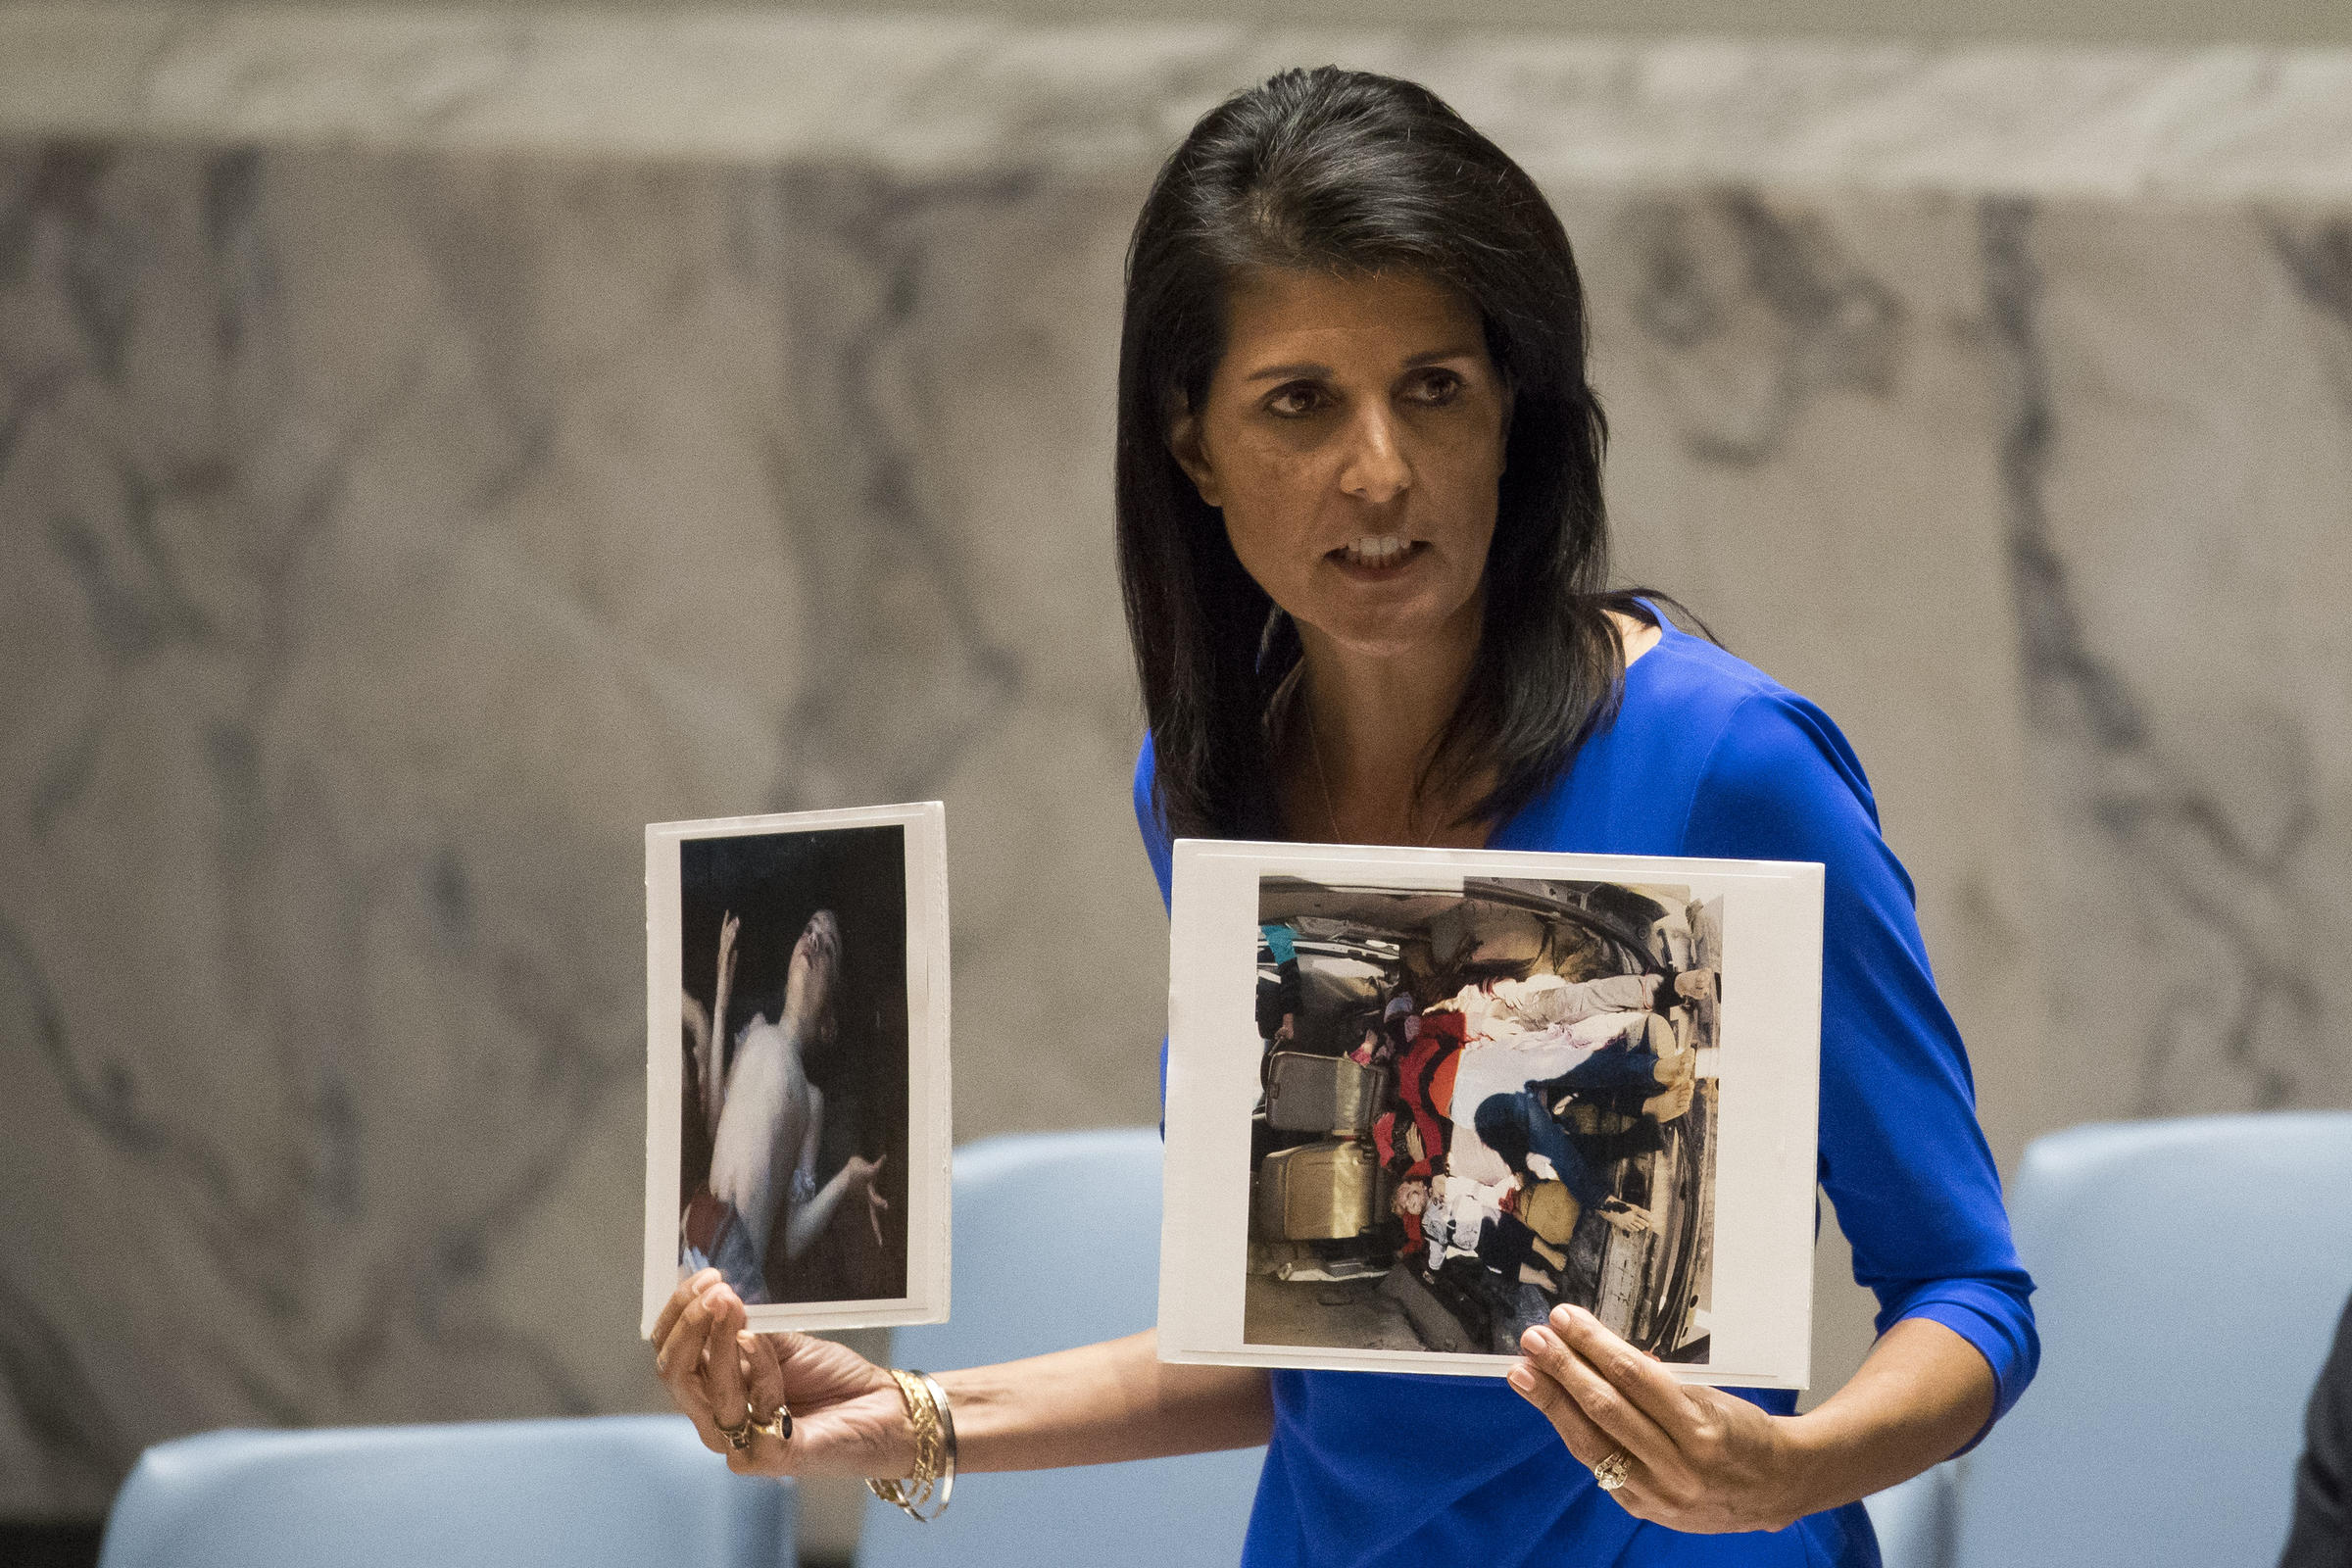 essay poison gas accusations greatly raise syria stakes  u s ambassador to the united nations nikki haley holds up photos of victims of the syrian